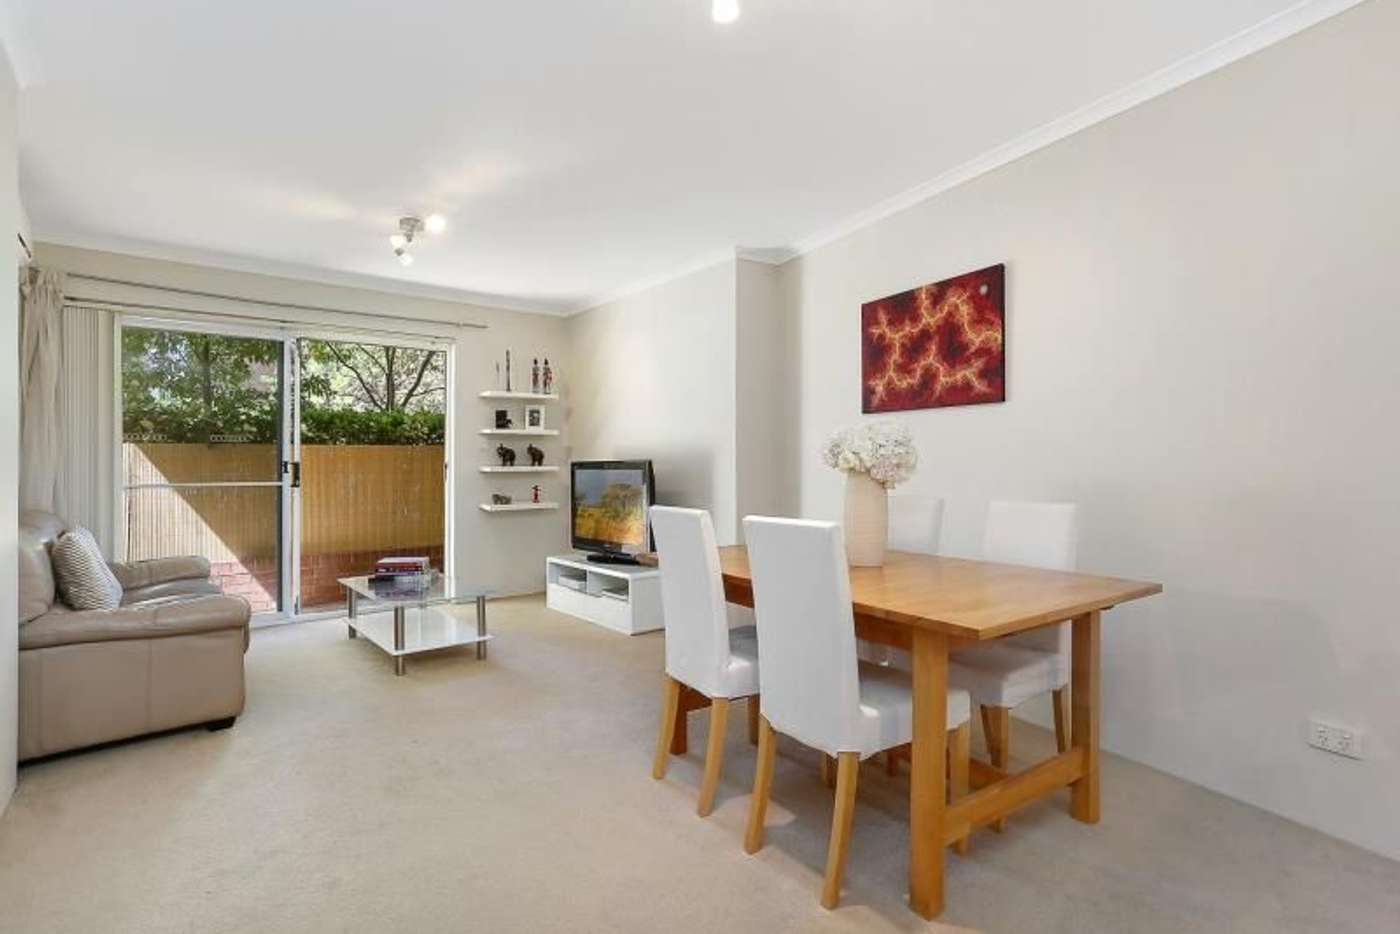 Fifth view of Homely apartment listing, 61/1-7 Gloucester Place, Kensington NSW 2033